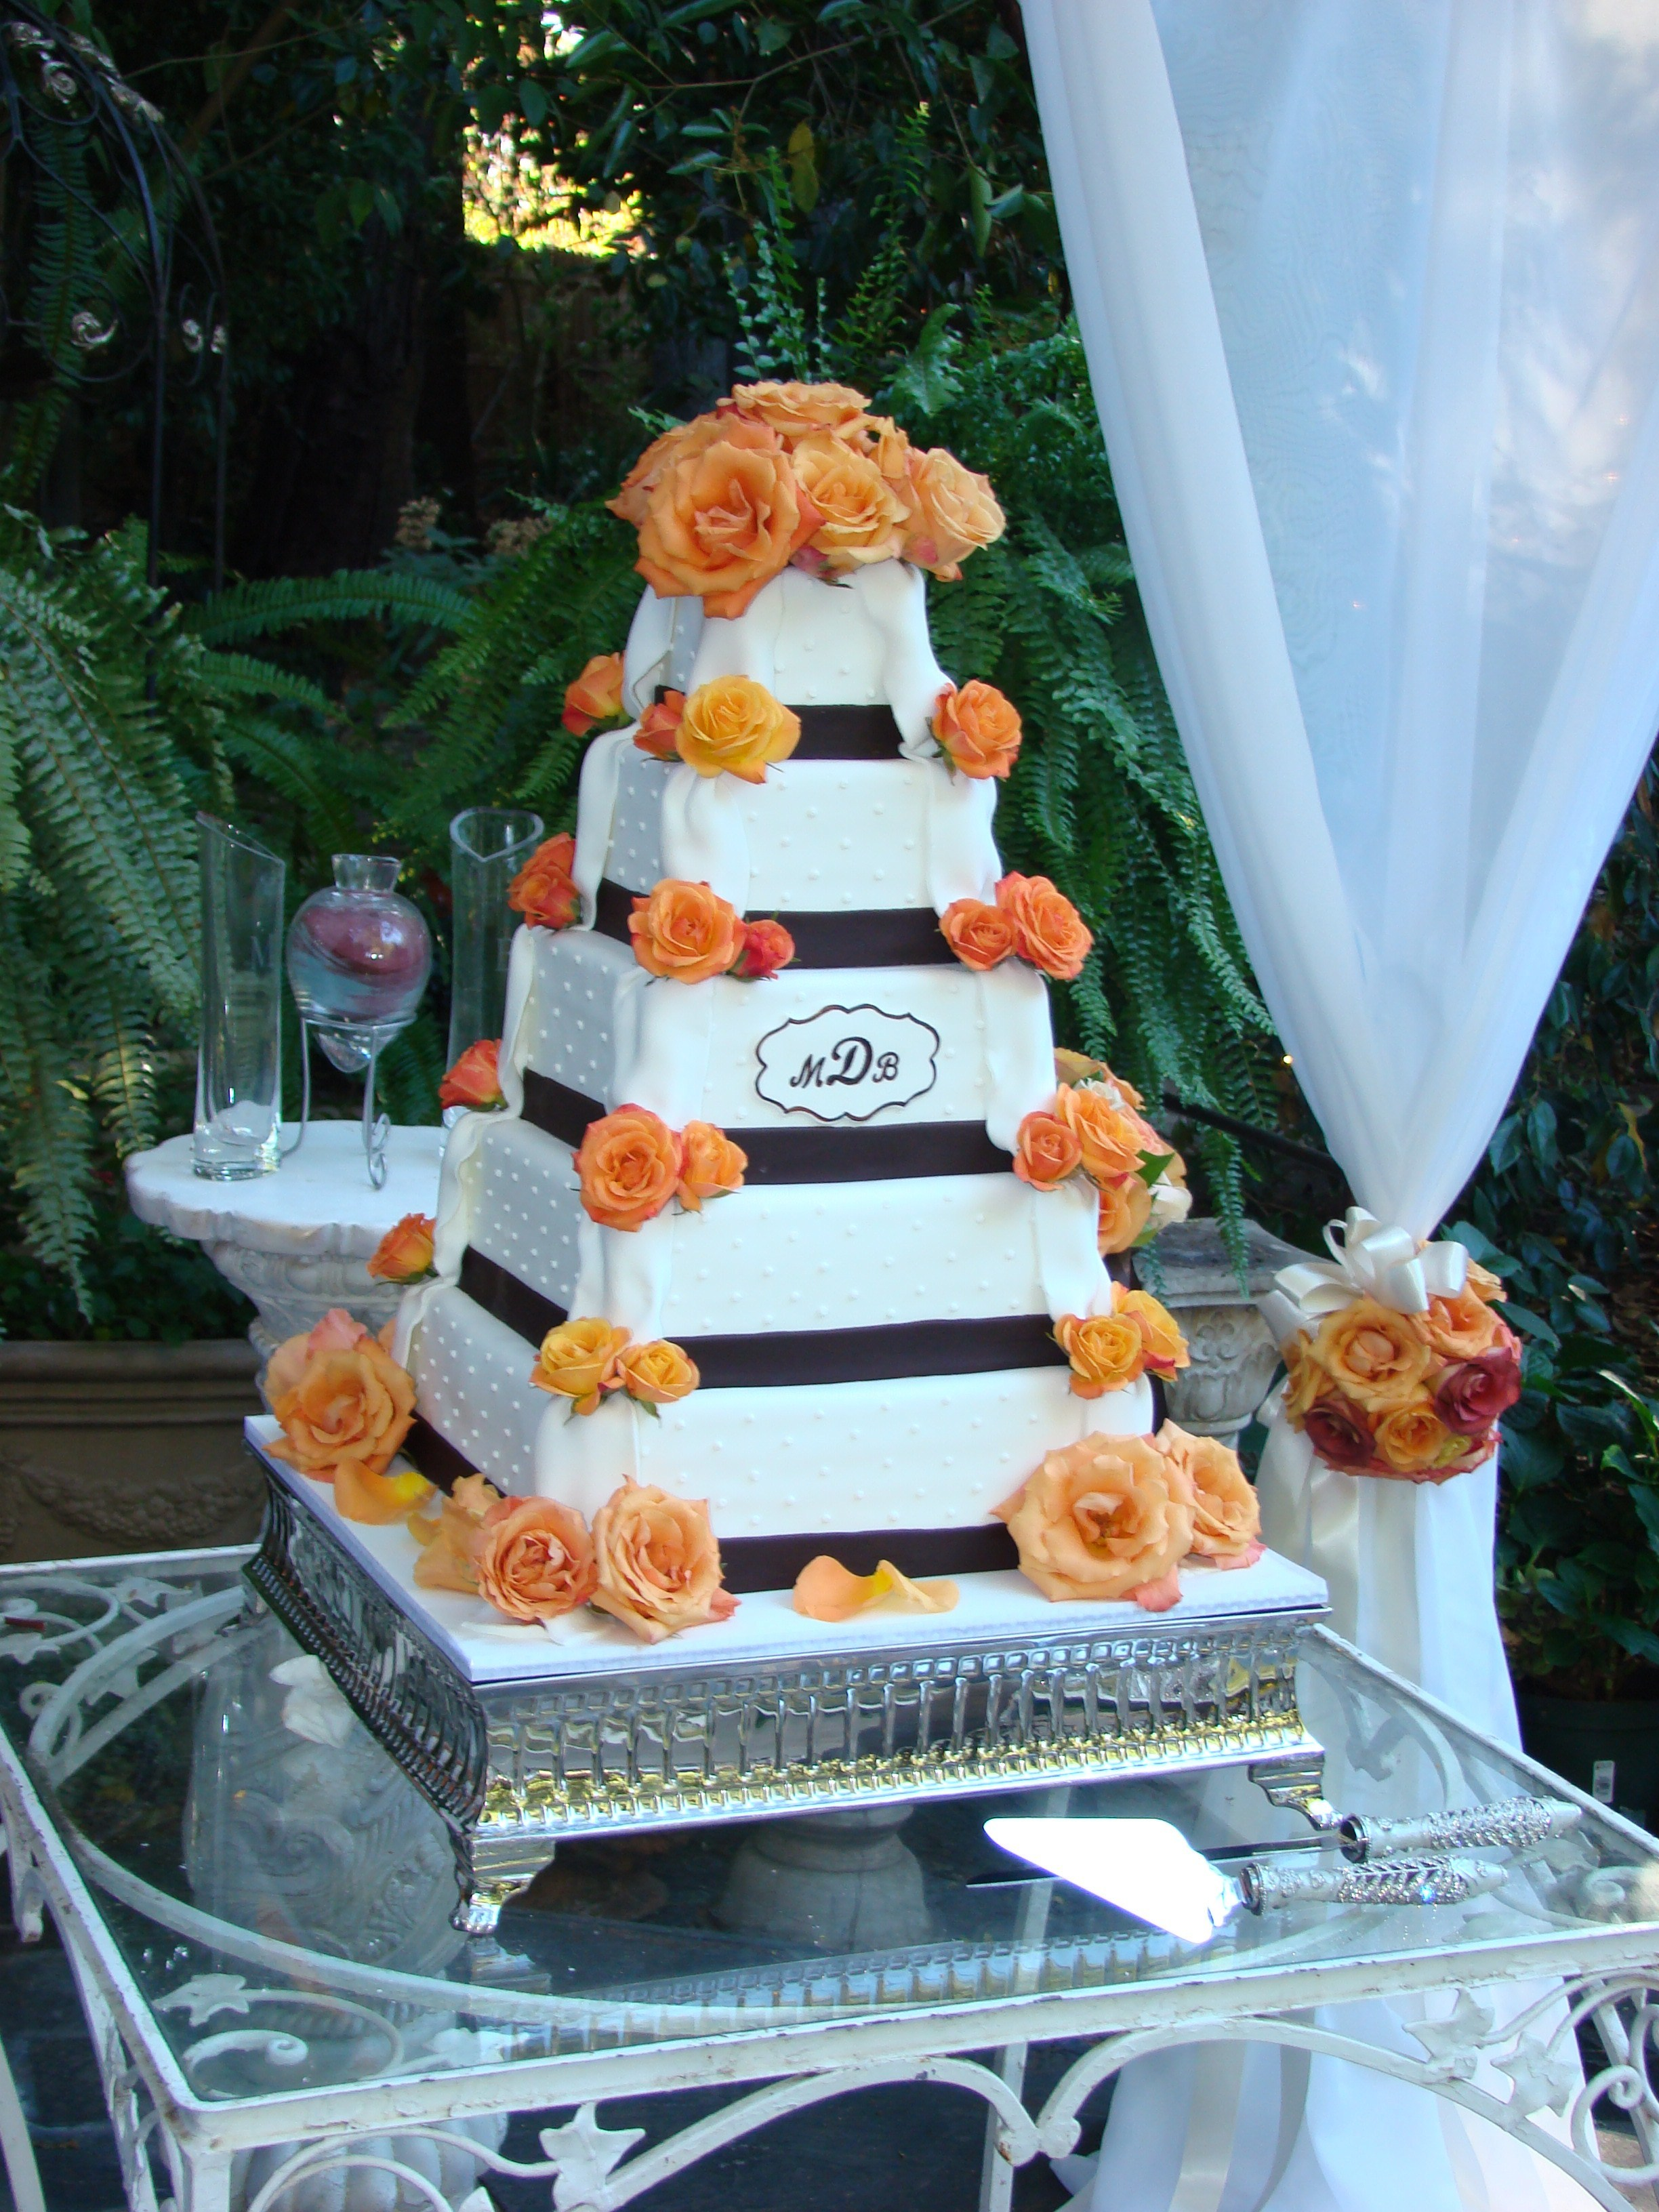 Cakes, white, orange, brown, gold, cake, Roses, Sweet, By, Rebecca, Sweet cakes by rebecca